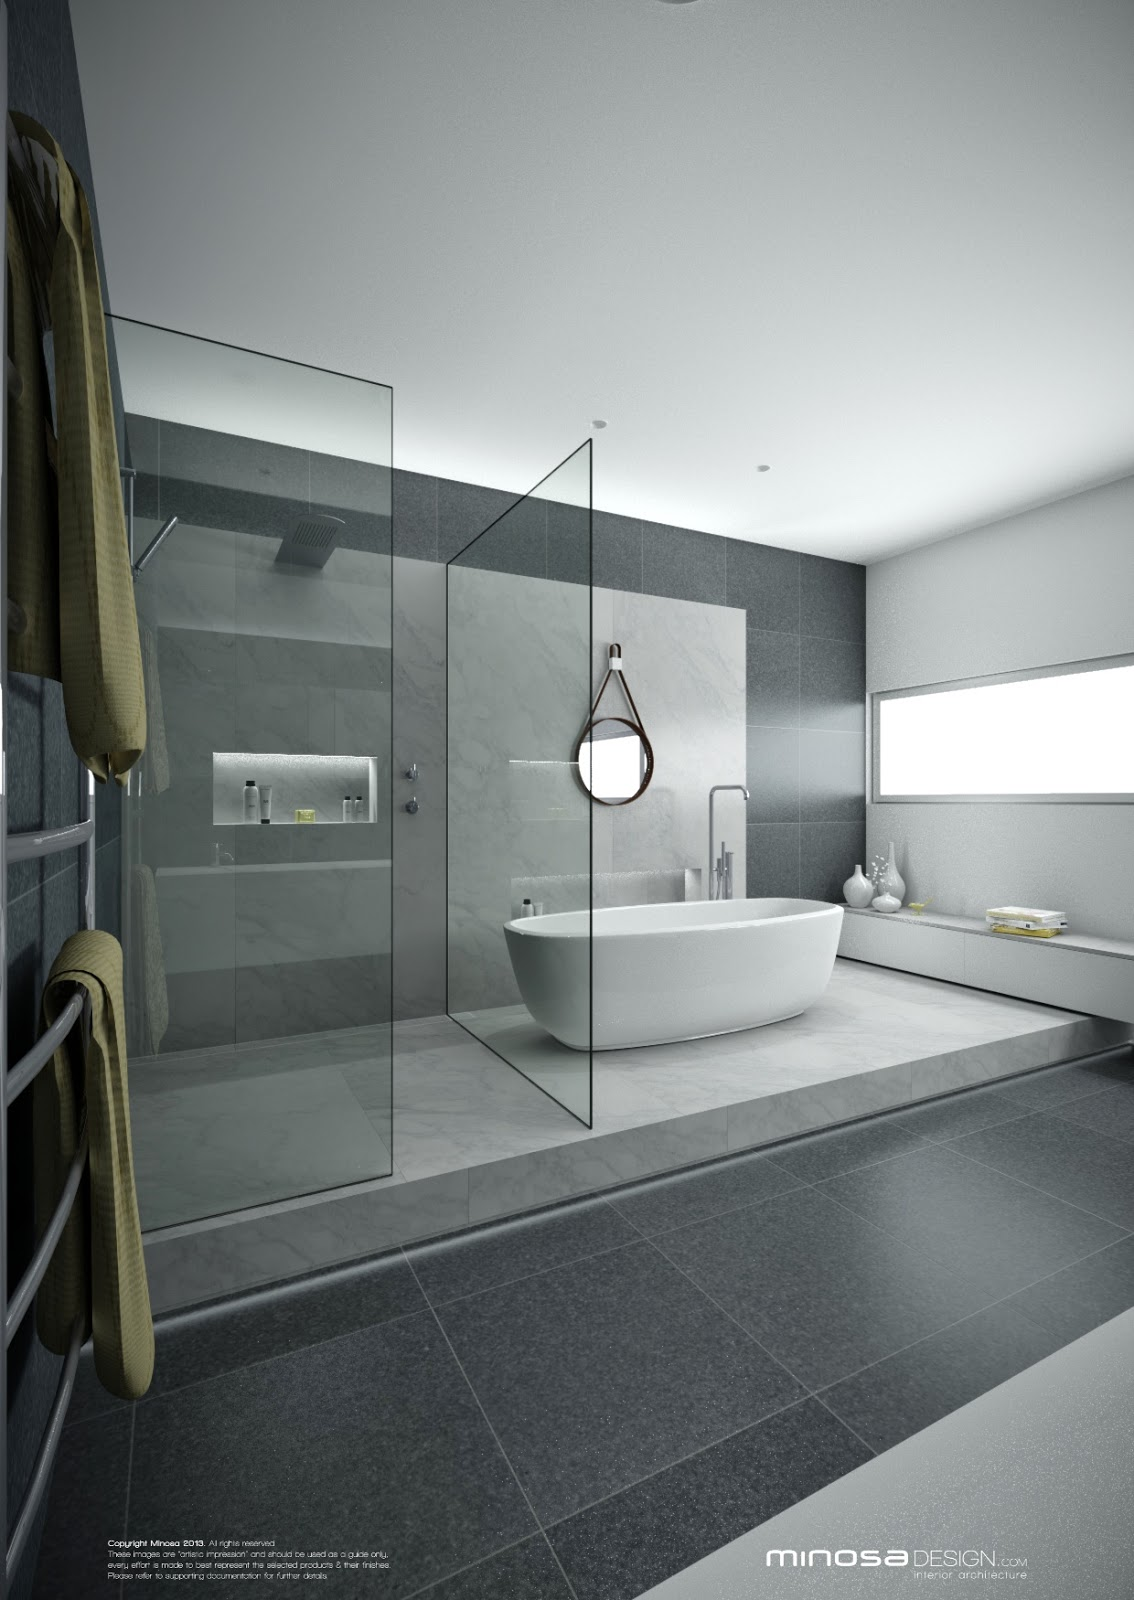 Minosa a real showstopper modern bathroom for Contemporary bathroom interior design